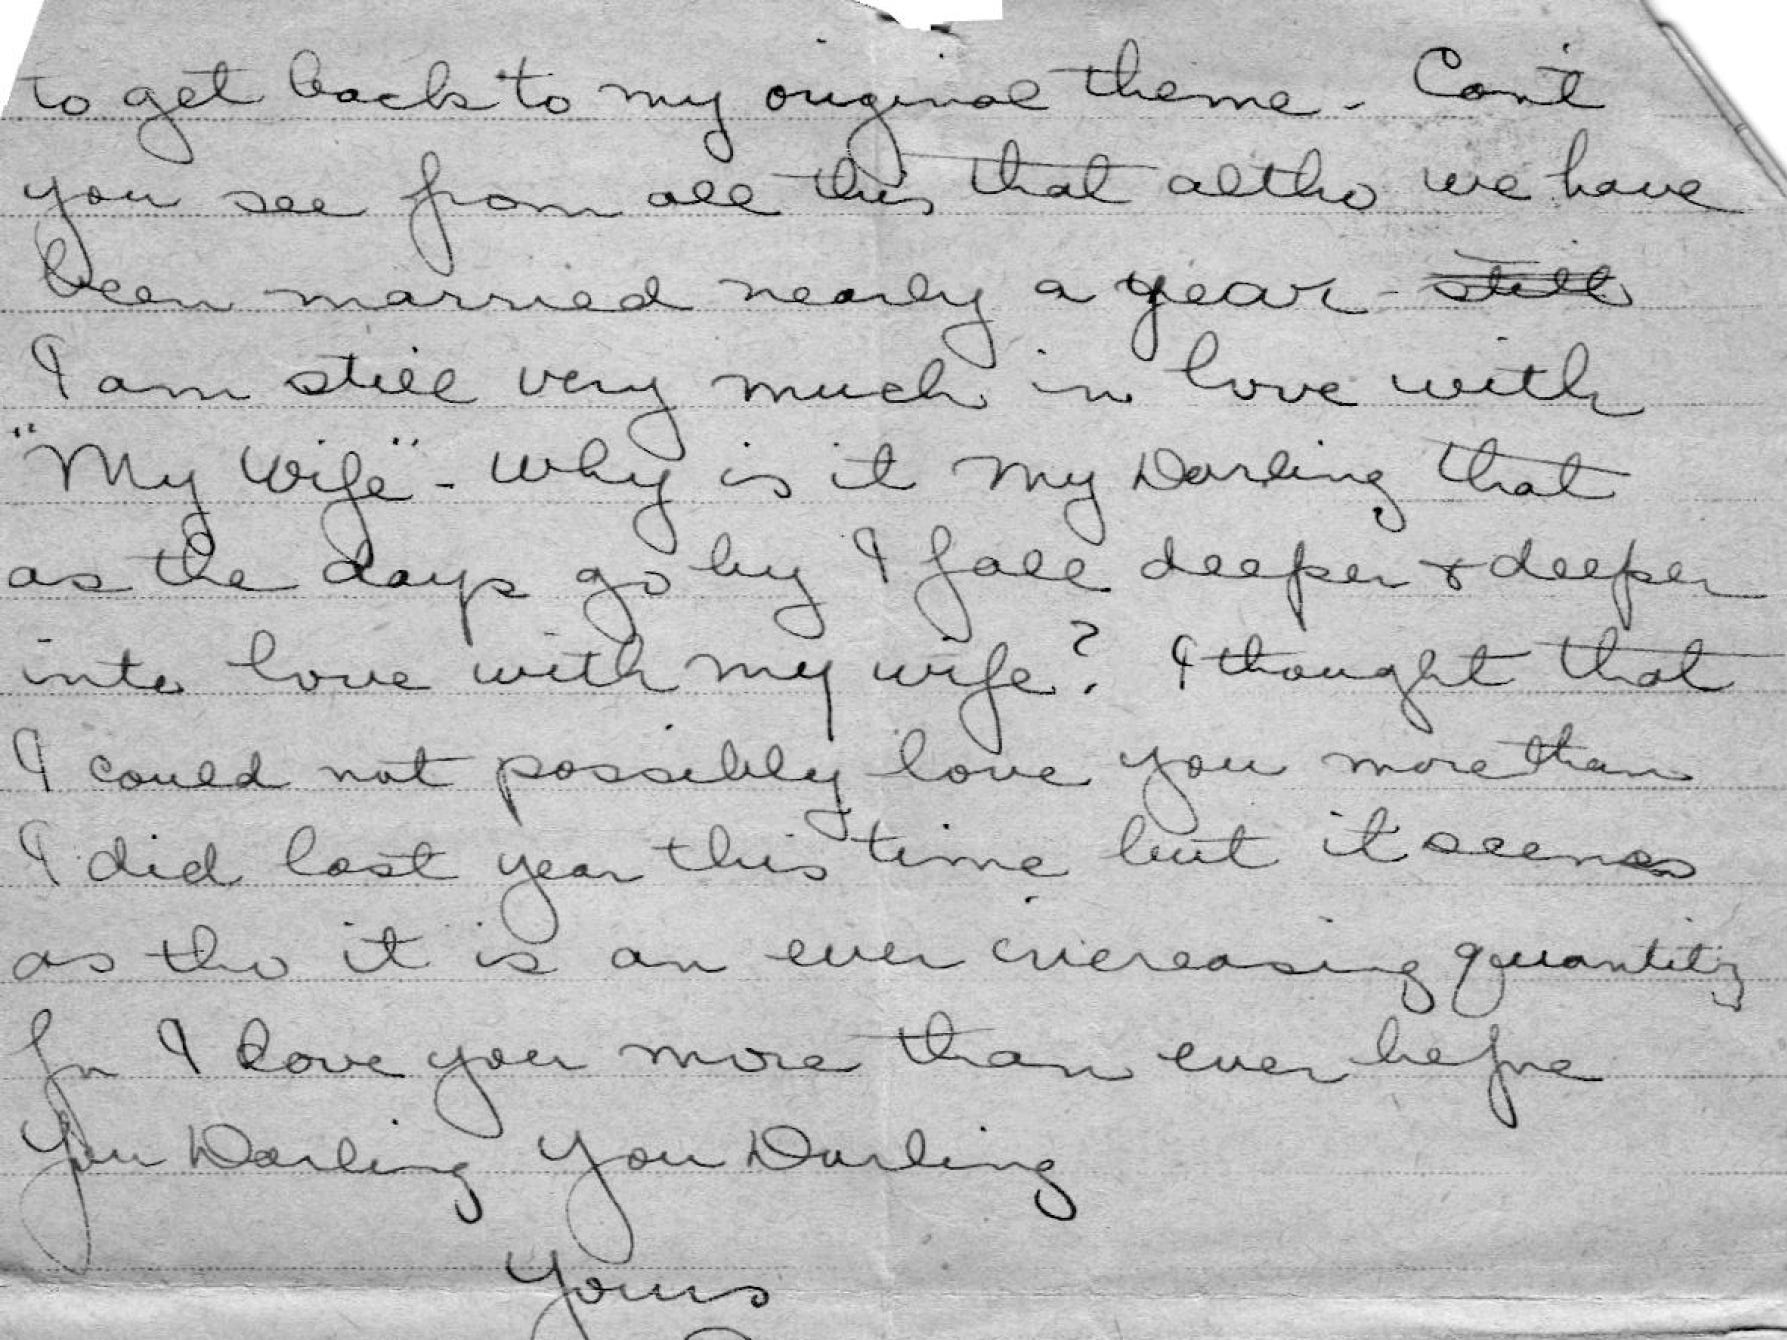 Page 4 of a letter to his wife on Nov. 17, 1918, in which Lolo writes about how much he misses his wife, how much he loves her and how he can't wait to meet his newborn son.